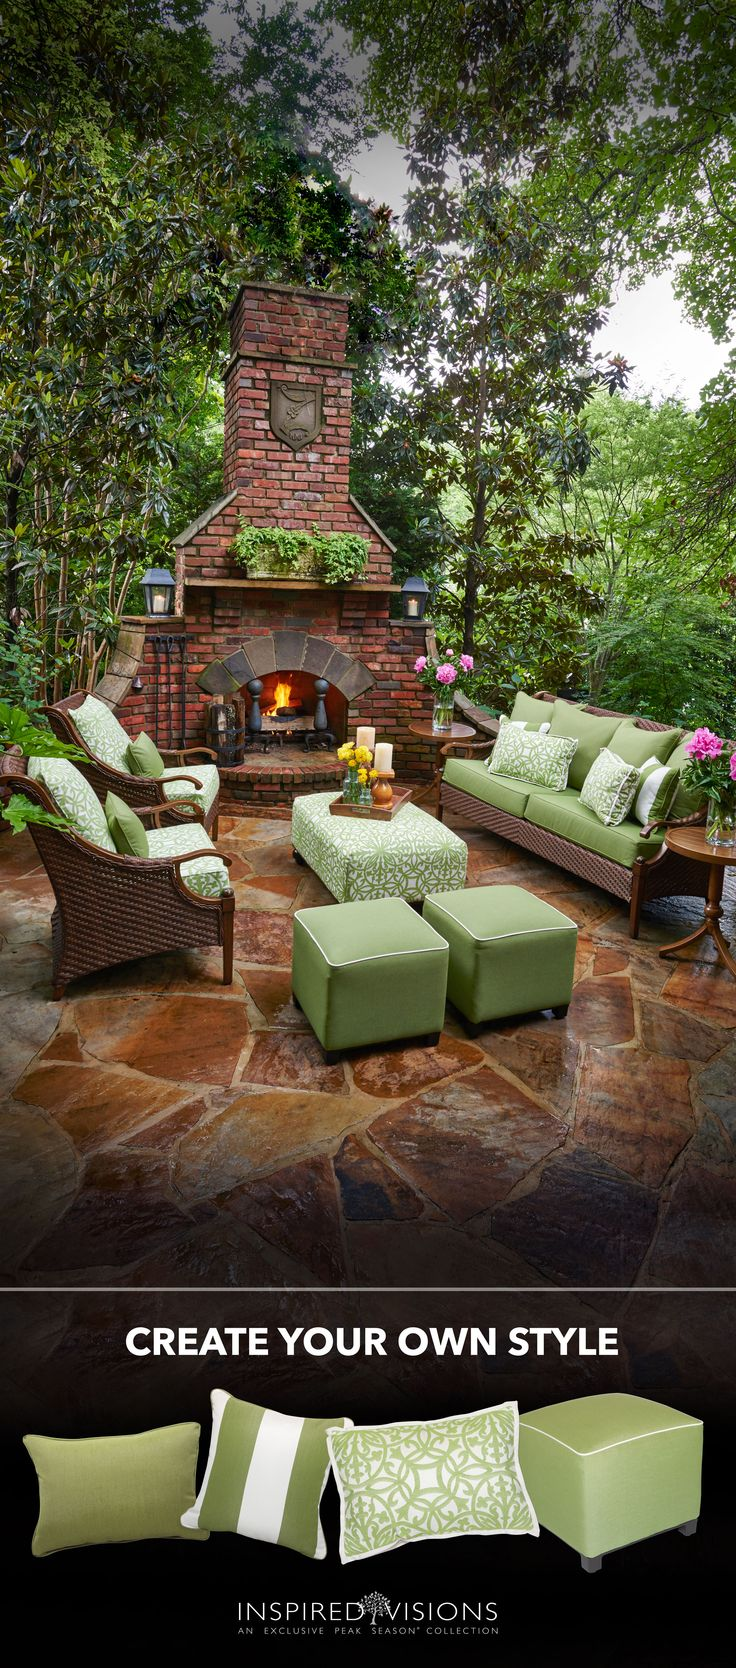 Enjoy daylight's every moment #outdoorliving